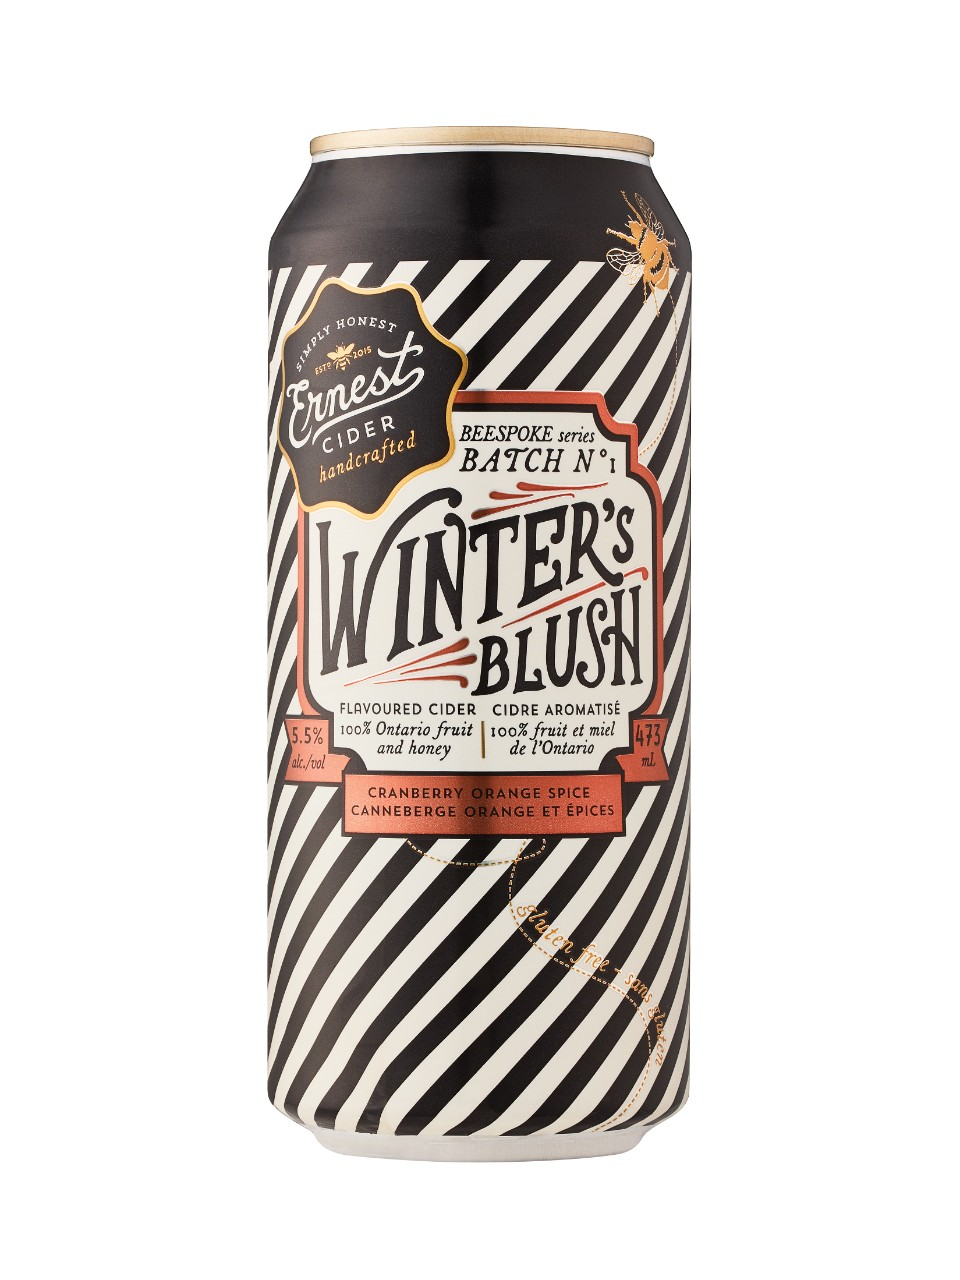 Image for Ernest Cider Winter's Blush from LCBO